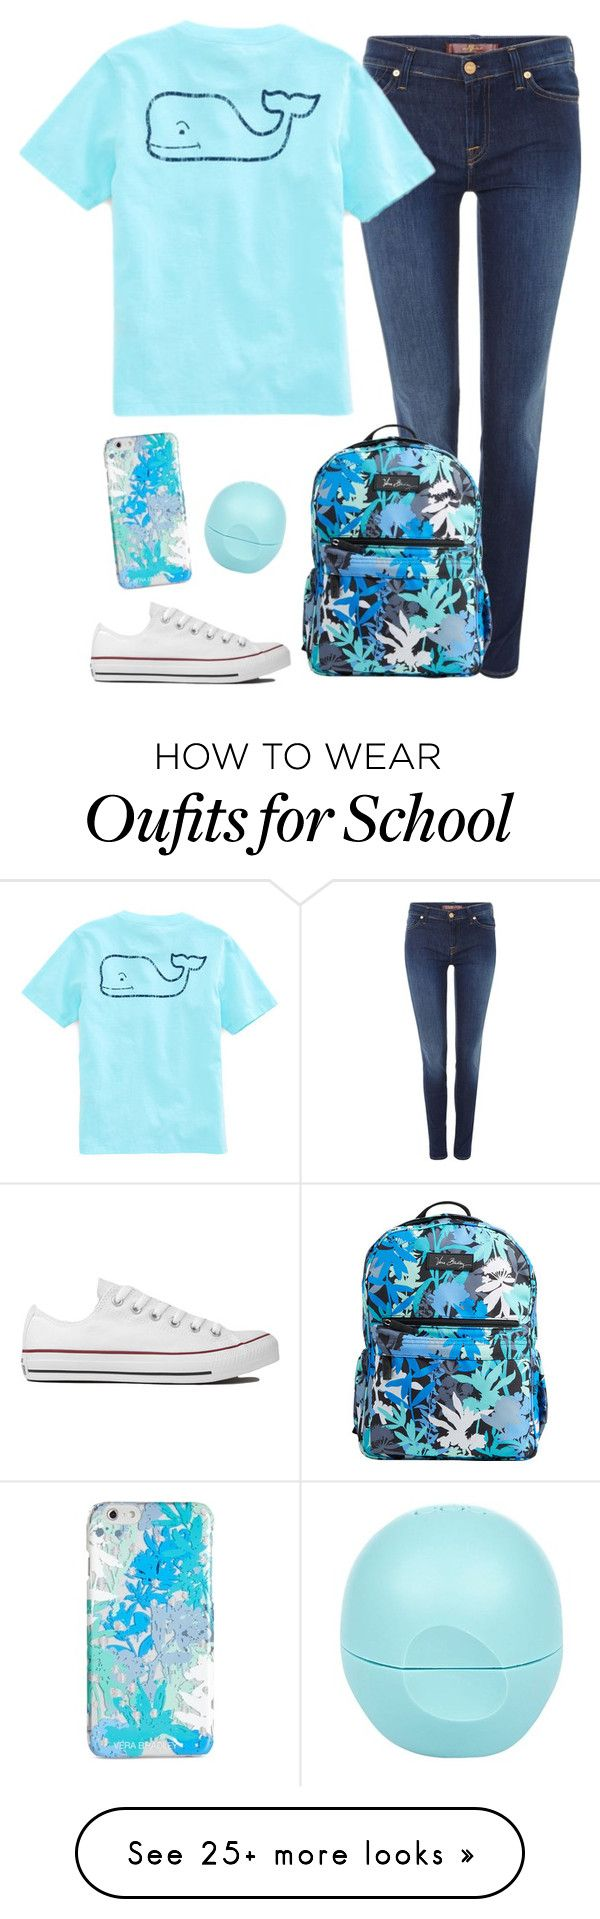 """School//Thuy"" by southern-slayers on Polyvore featuring 7 For All Mankind, Vineyard Vines, Converse, Vera"